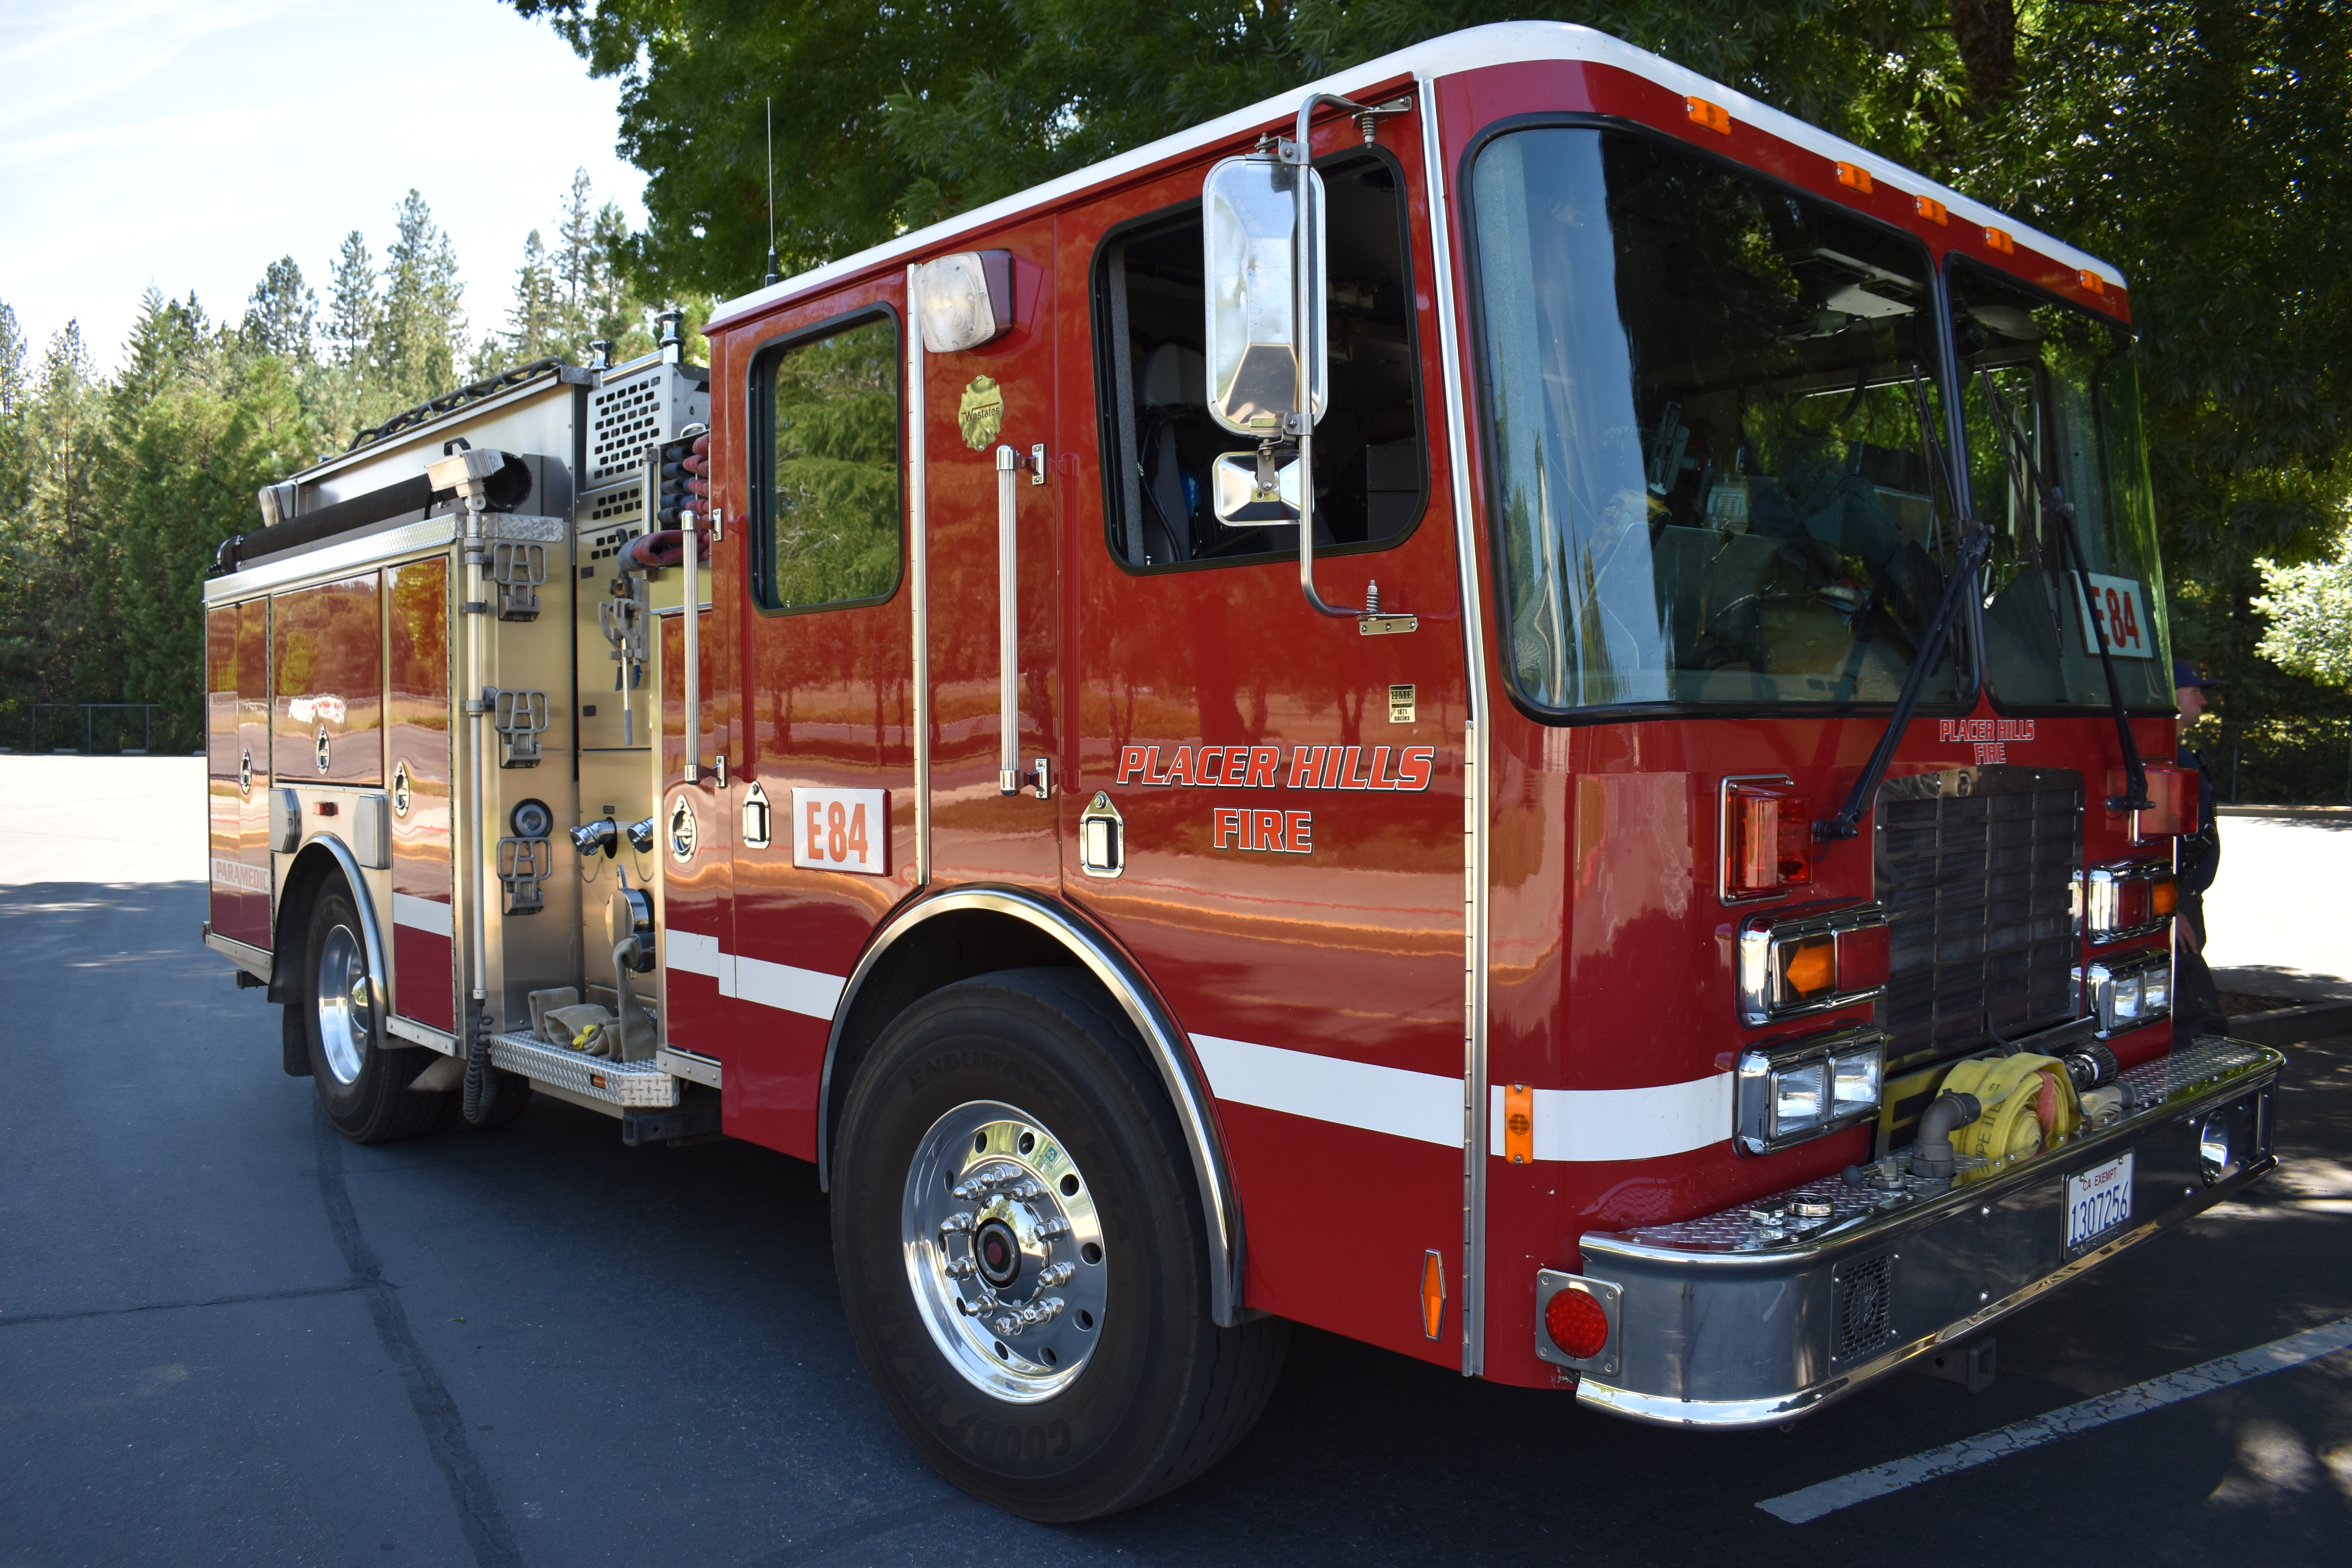 Fire Stations And Apparatus Placer Hills Fire Protection District